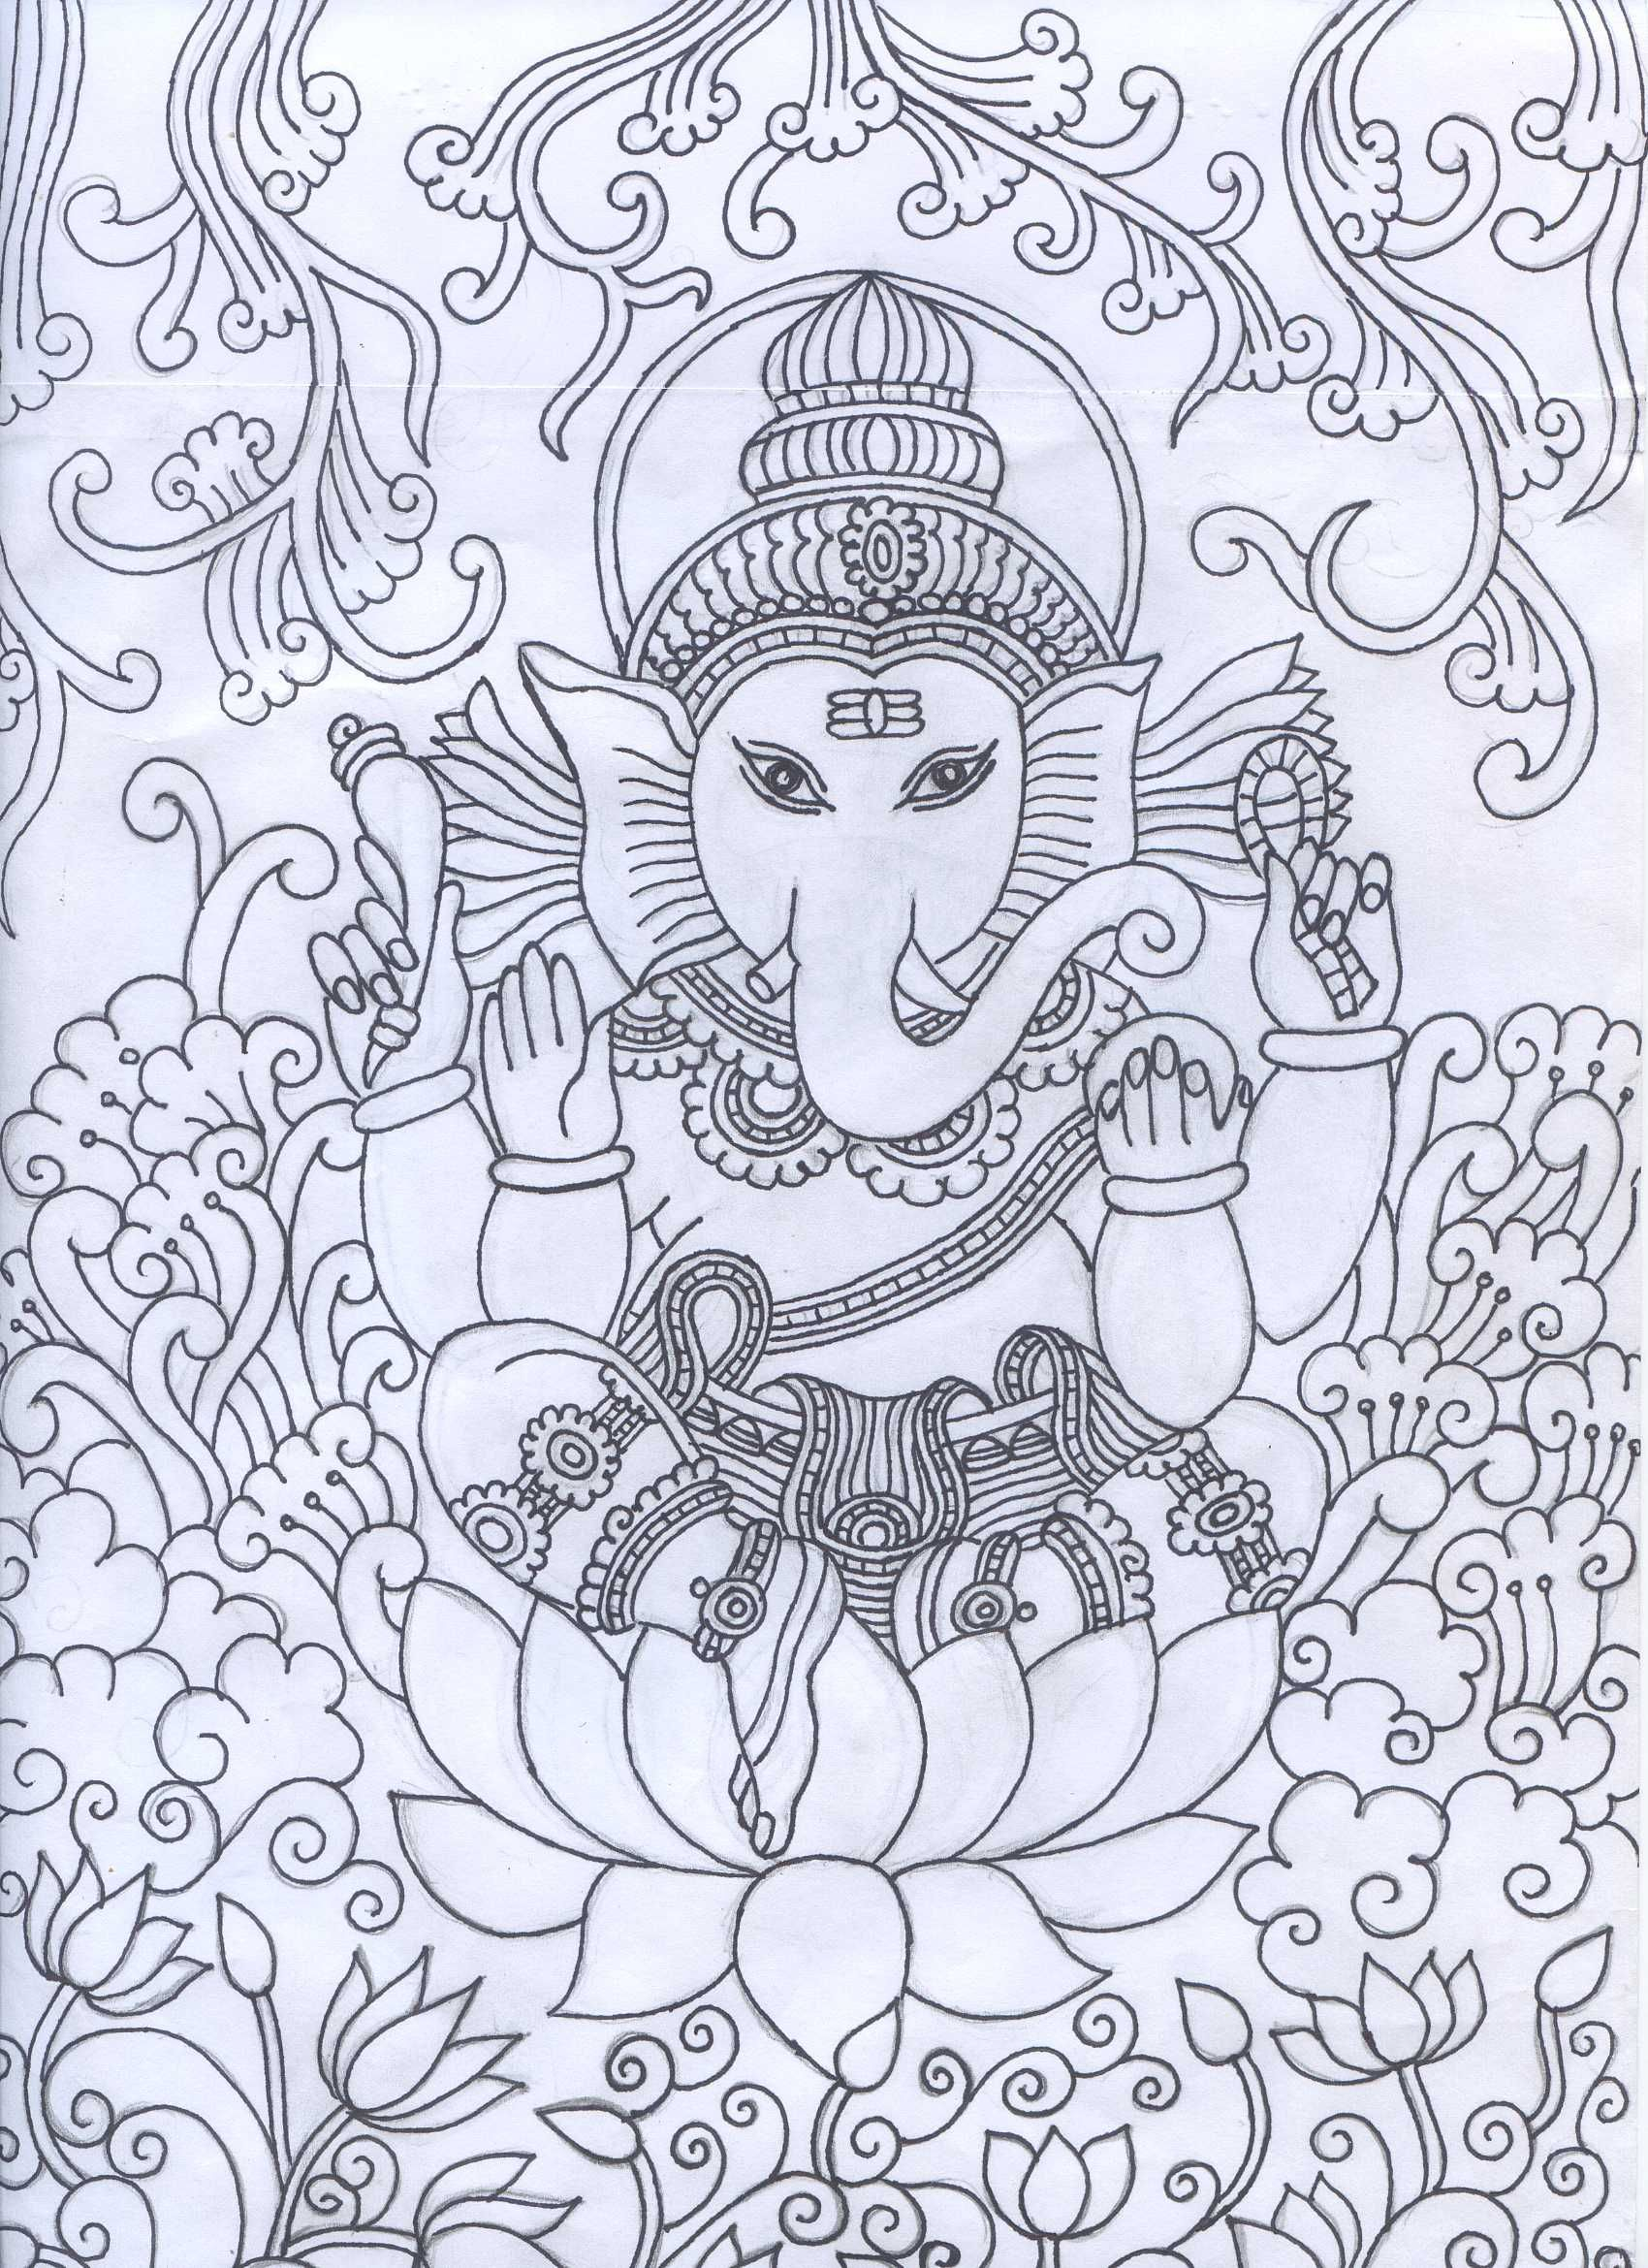 Ganesha mural pencil sketch